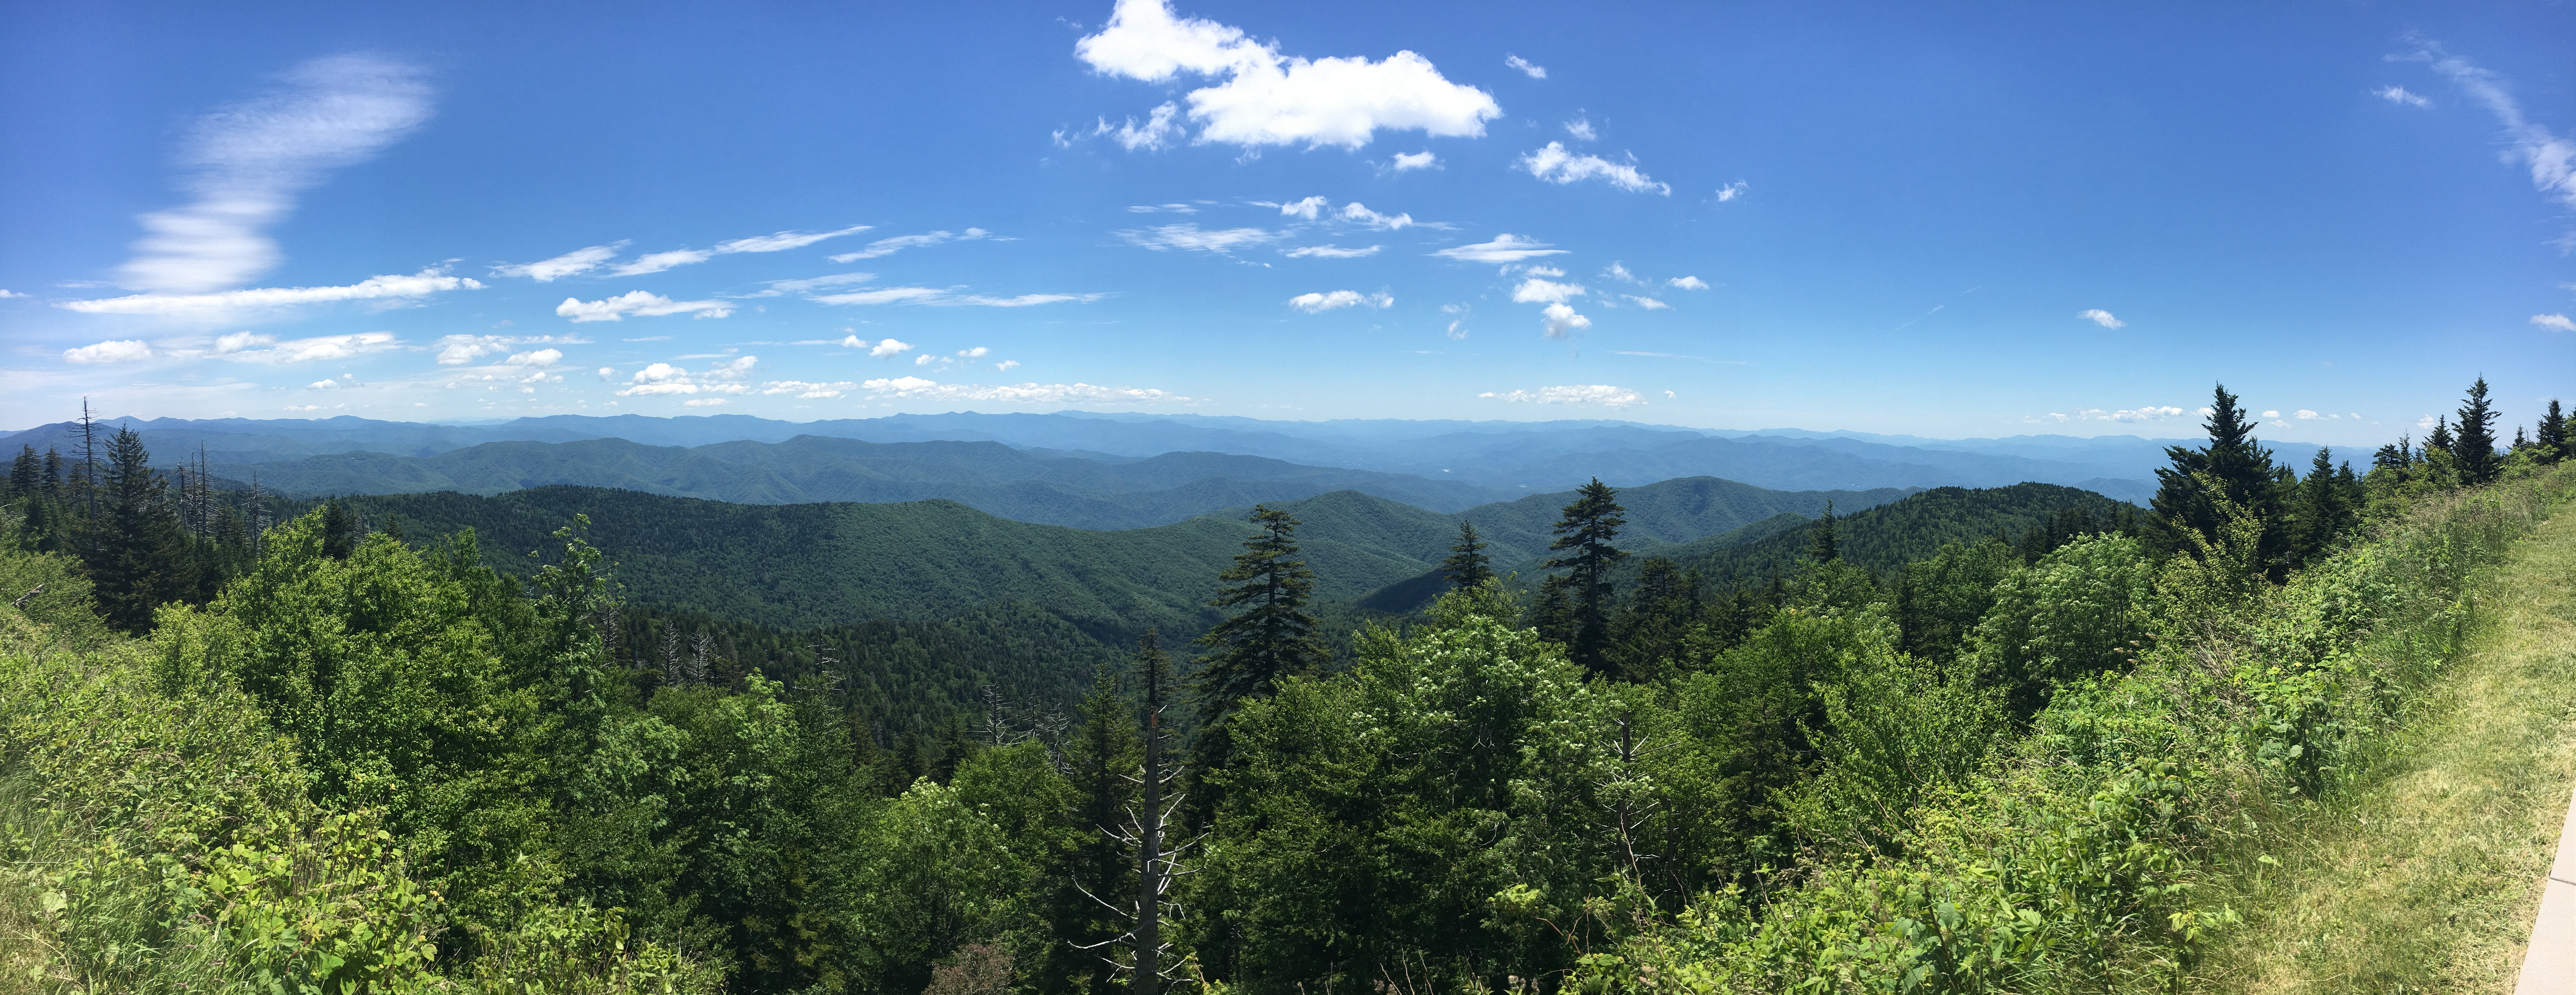 Clingmans Dome in the Great Smoky Mountains National Park. The highest point in the Smokies.